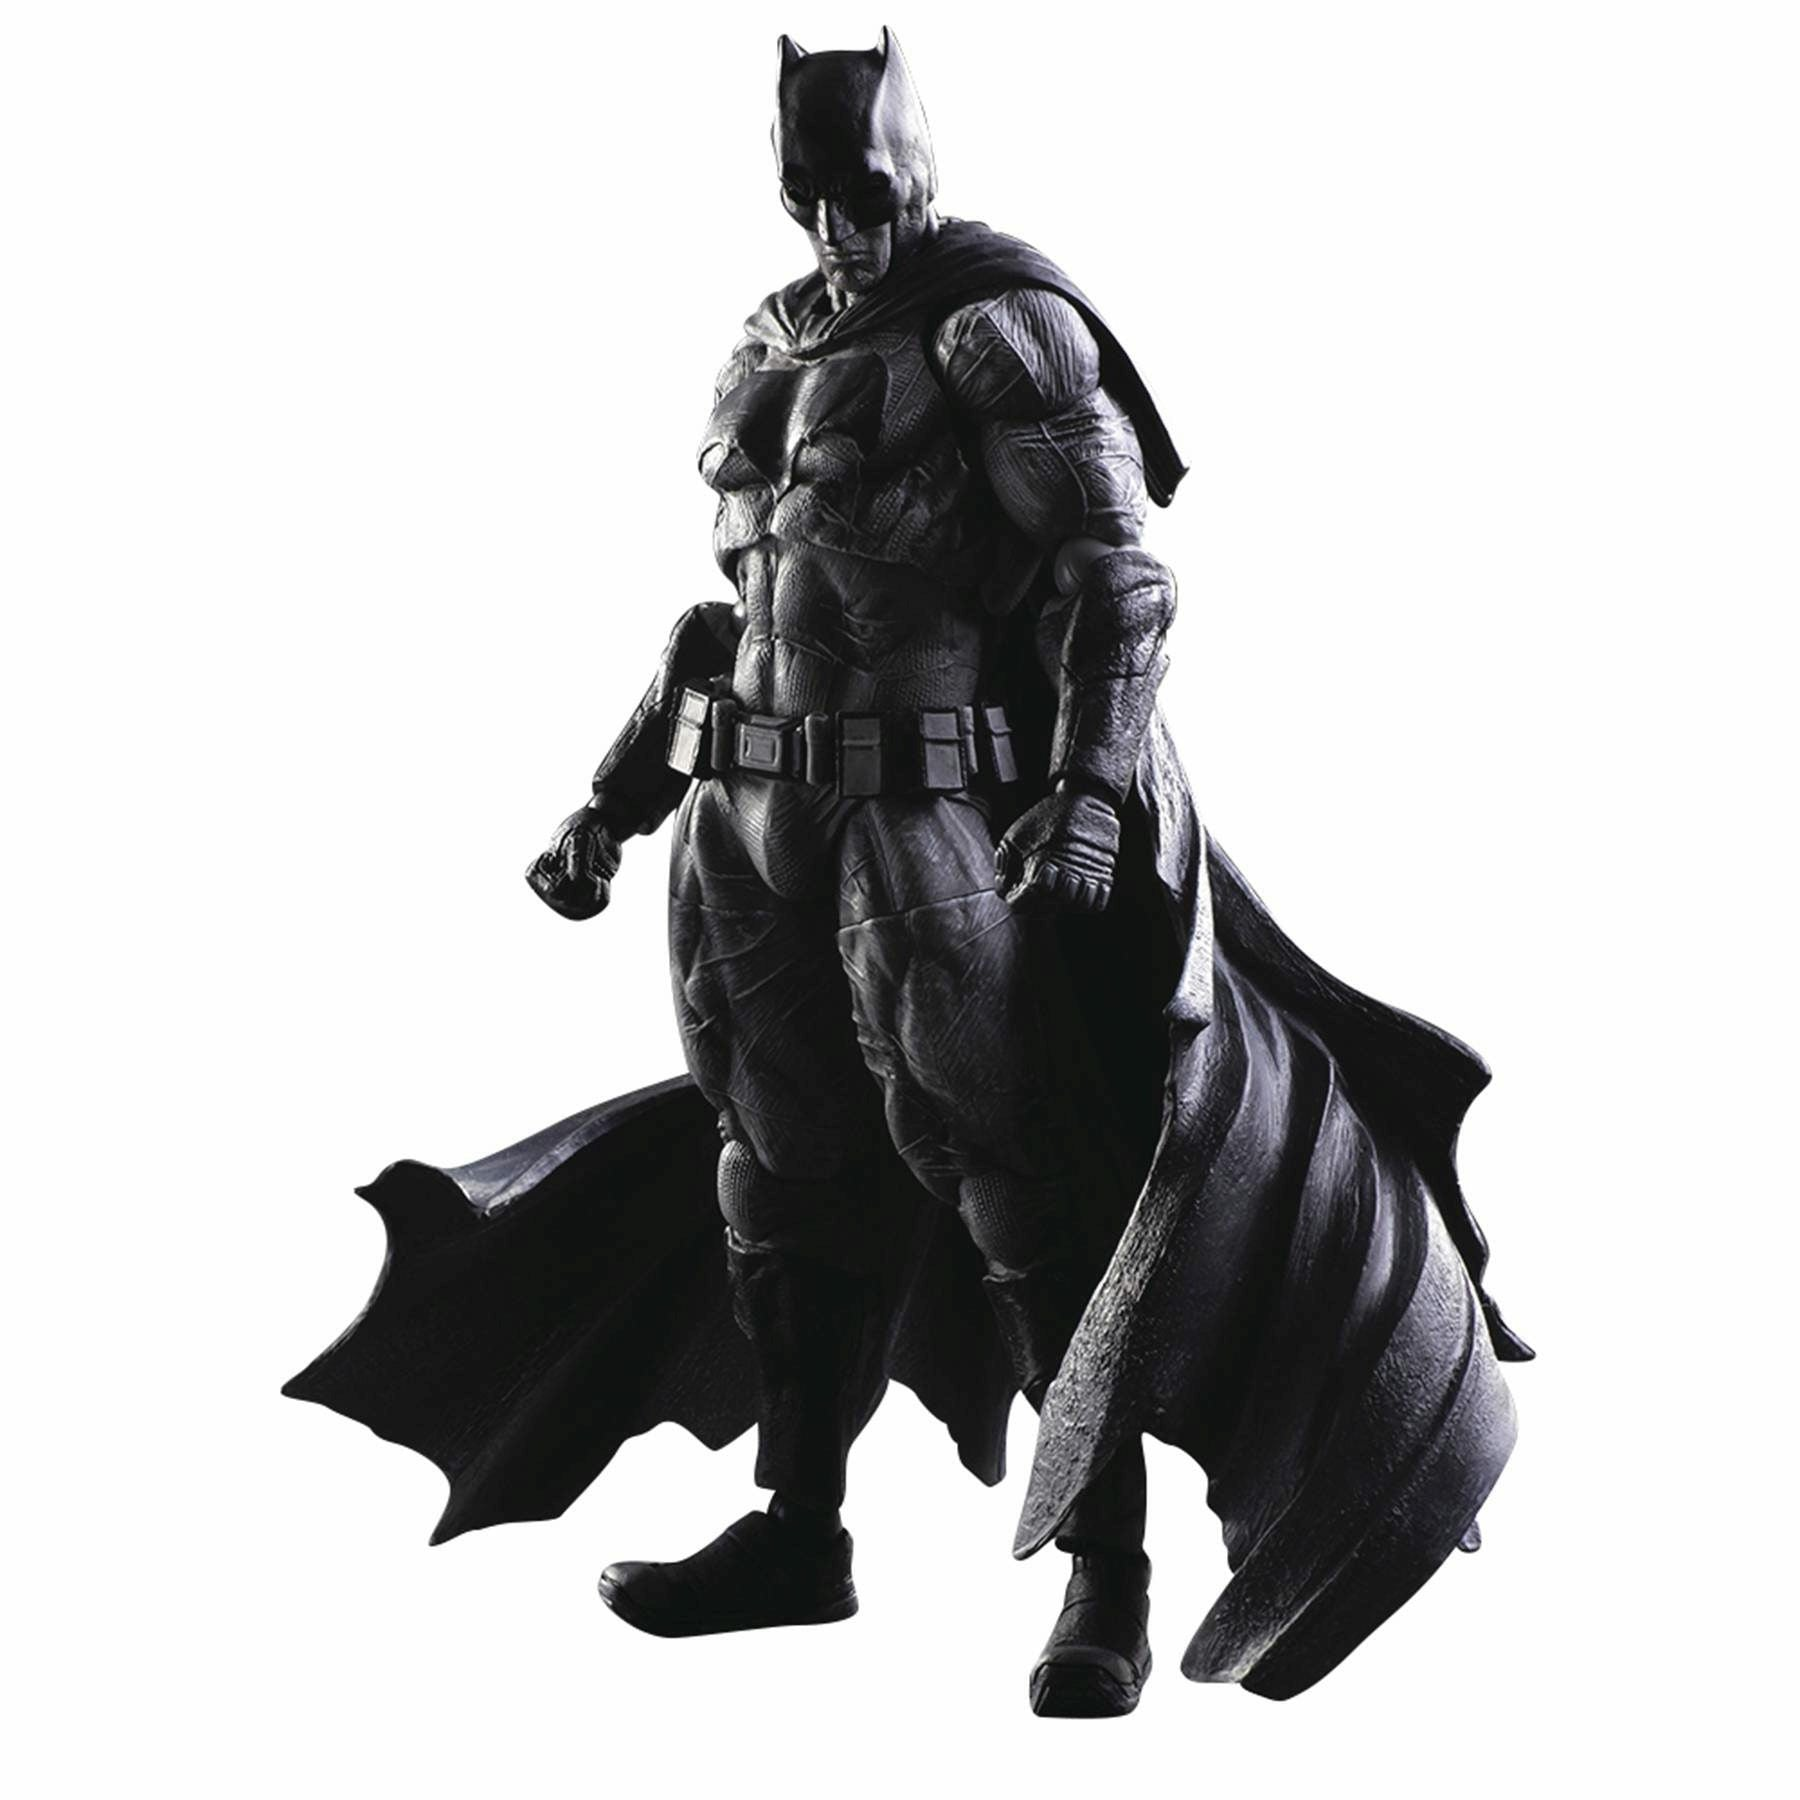 DC Comics Batman vs. Superman Batman B&W Ver. Play Arts Kai Action Figure